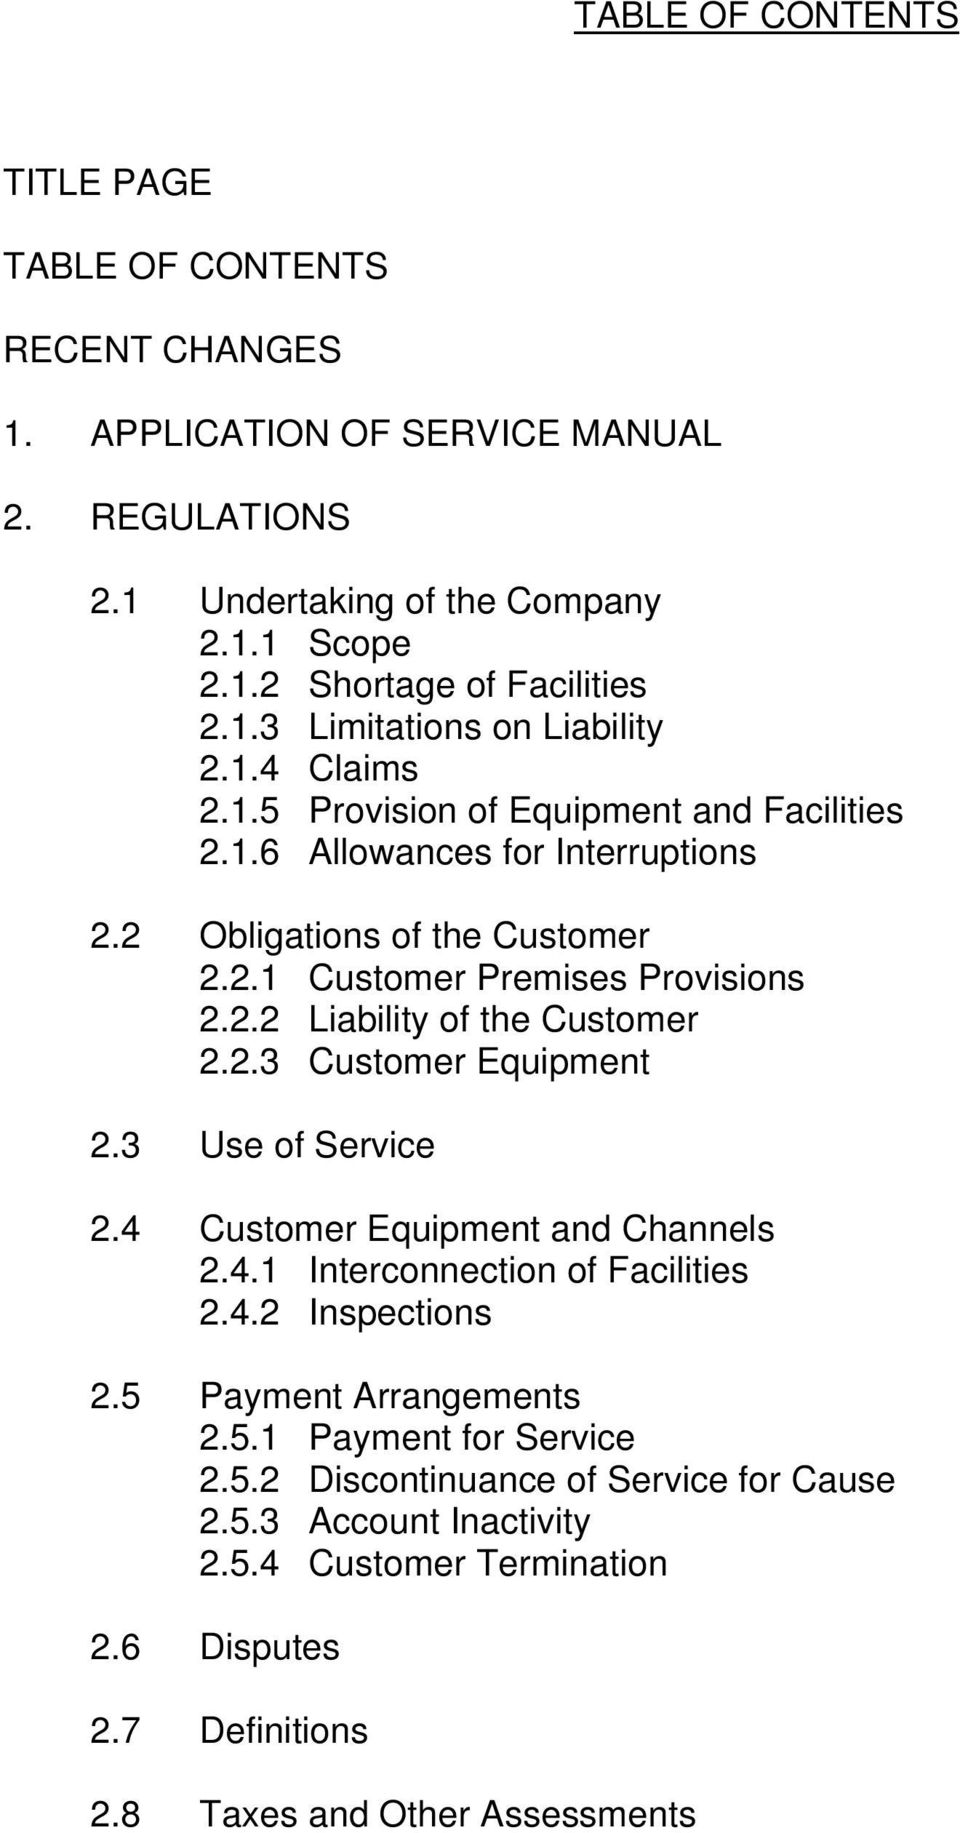 2.3 Customer Equipment 2.3 Use of Service 2.4 Customer Equipment and Channels 2.4.1 Interconnection of Facilities 2.4.2 Inspections 2.5 Payment Arrangements 2.5.1 Payment for Service 2.